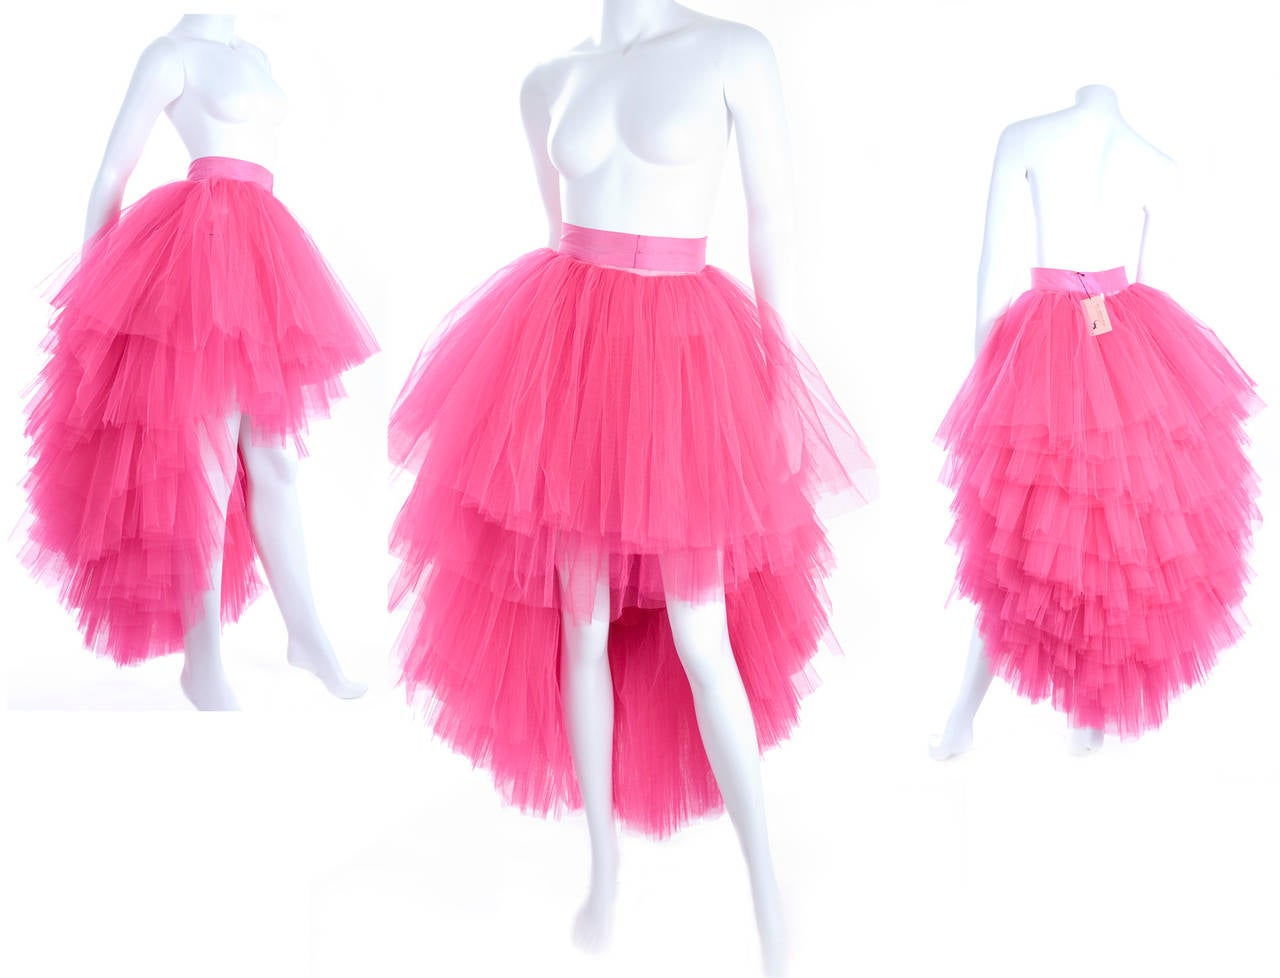 All About Eve Couture by Talbot Runhof Tulle Skirt 2